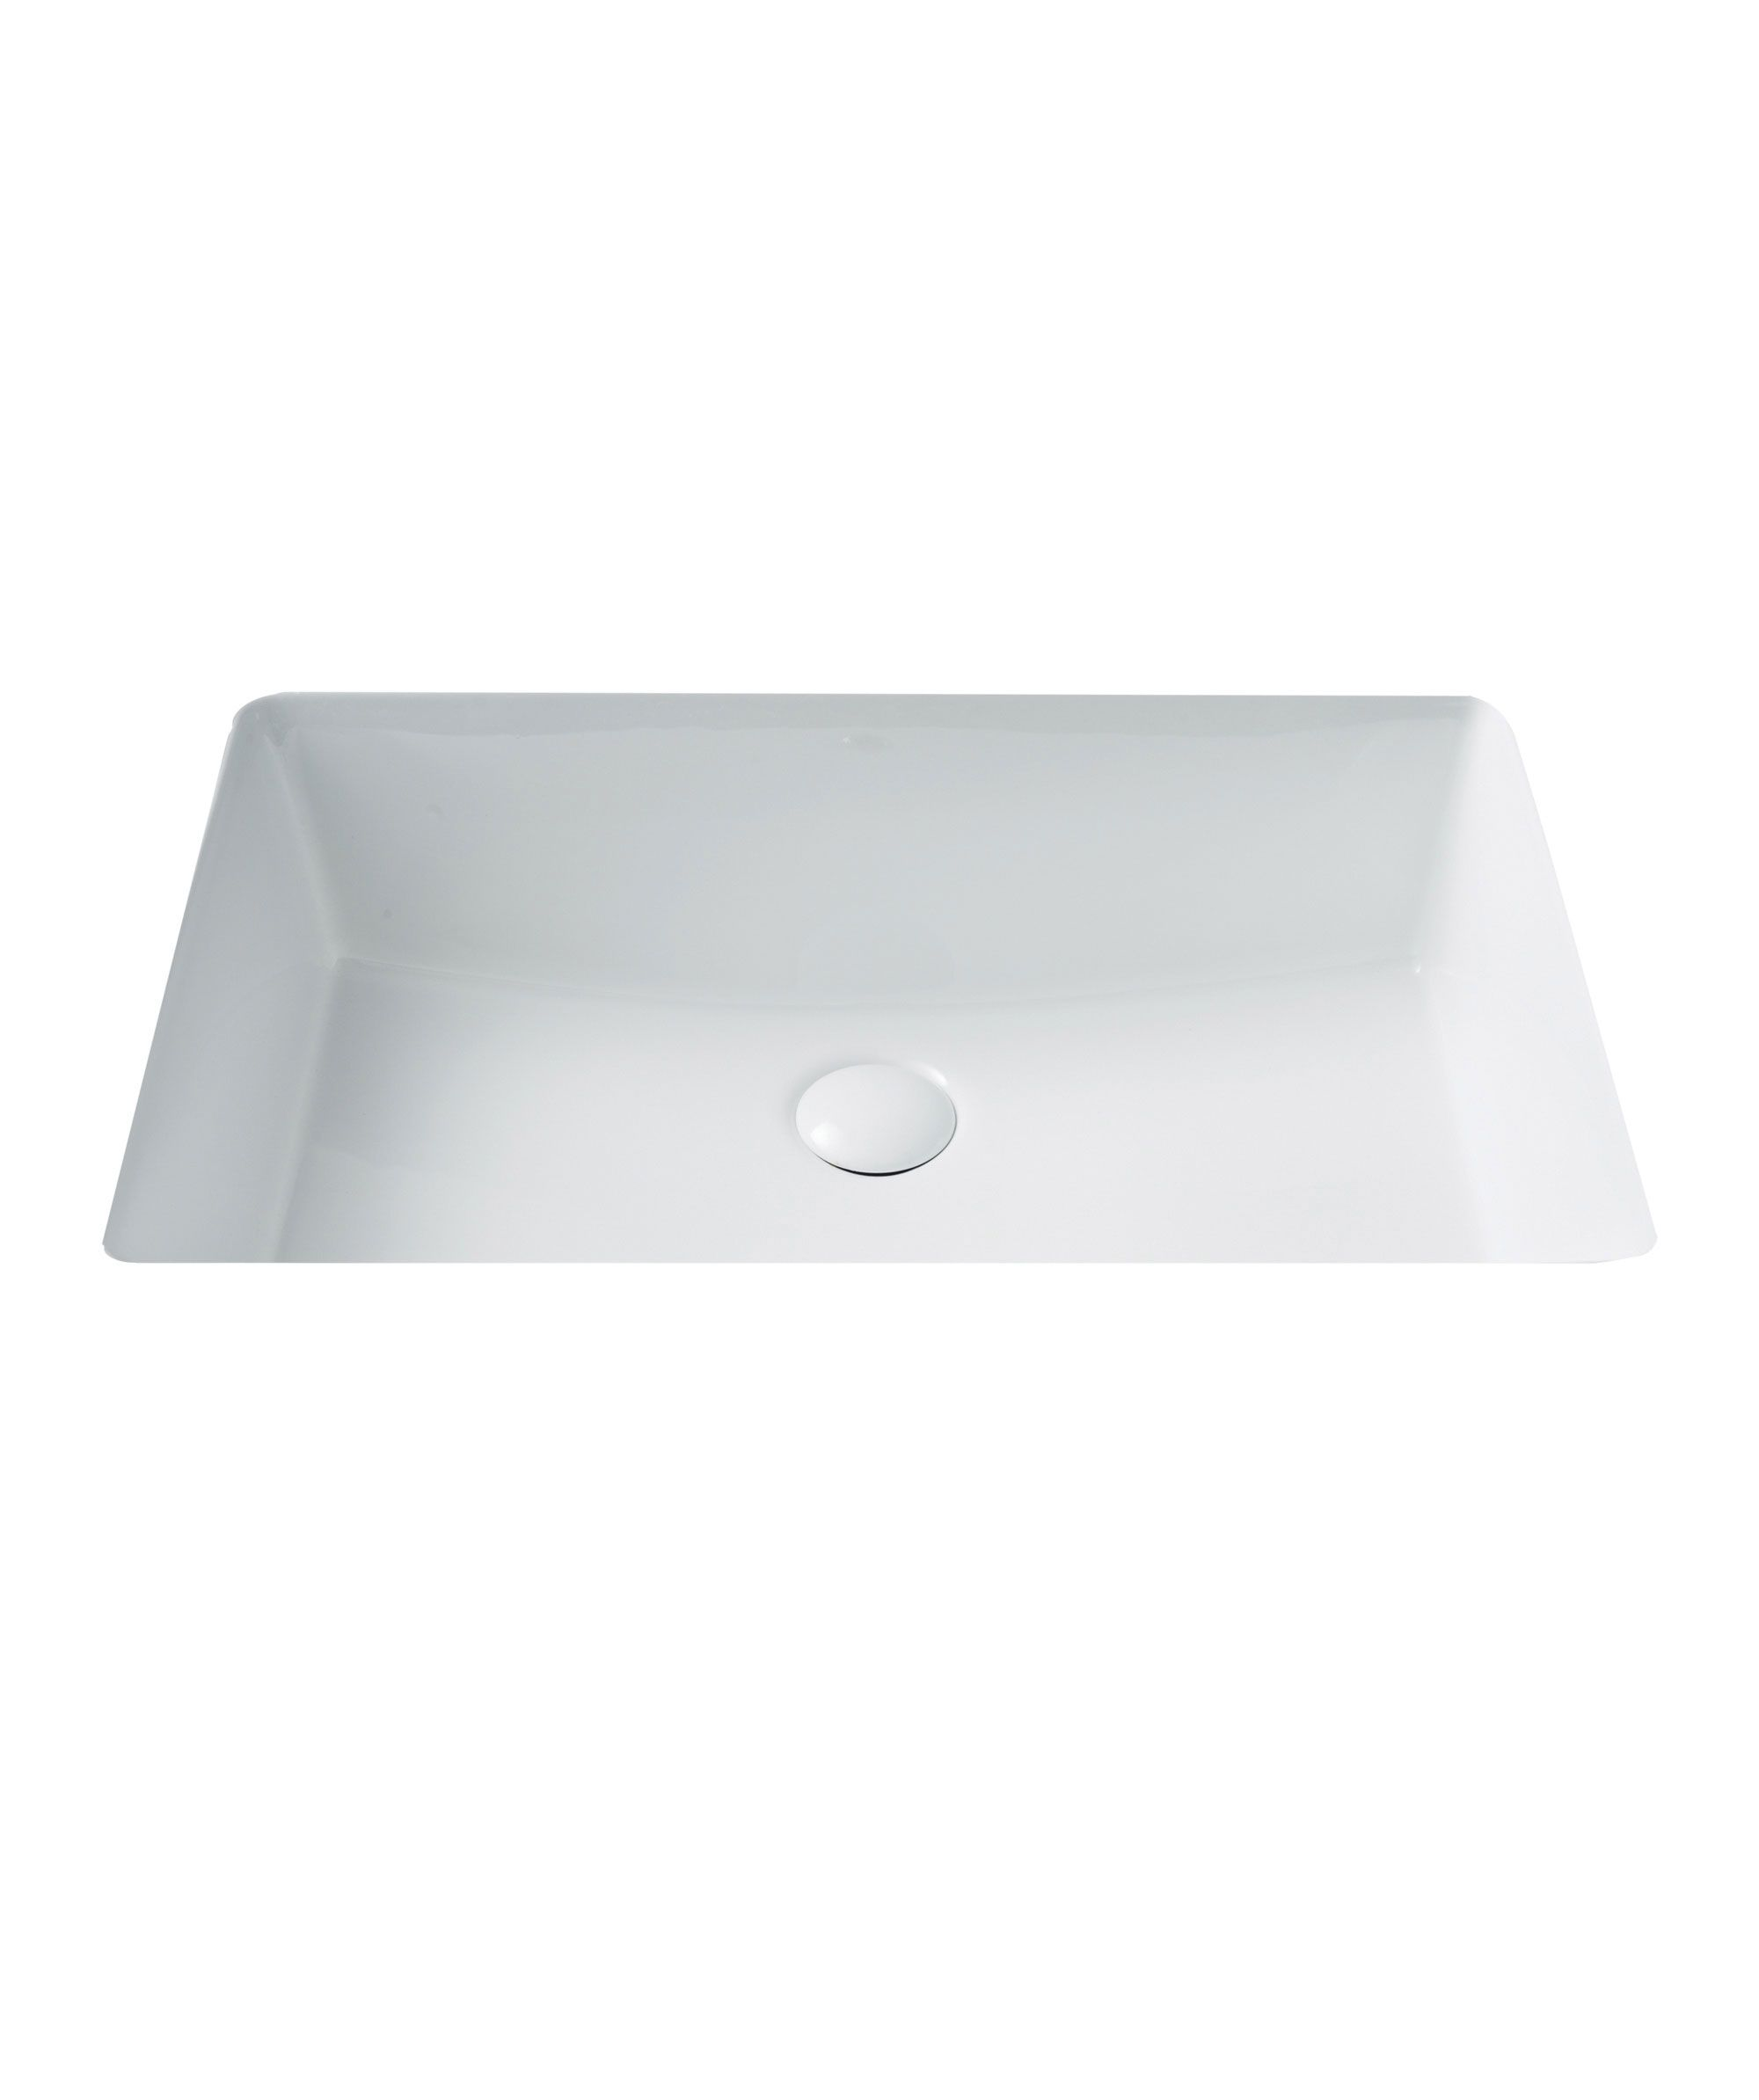 Plati 204 White Seima In 2020 Basin Rectangular Vanity Basin